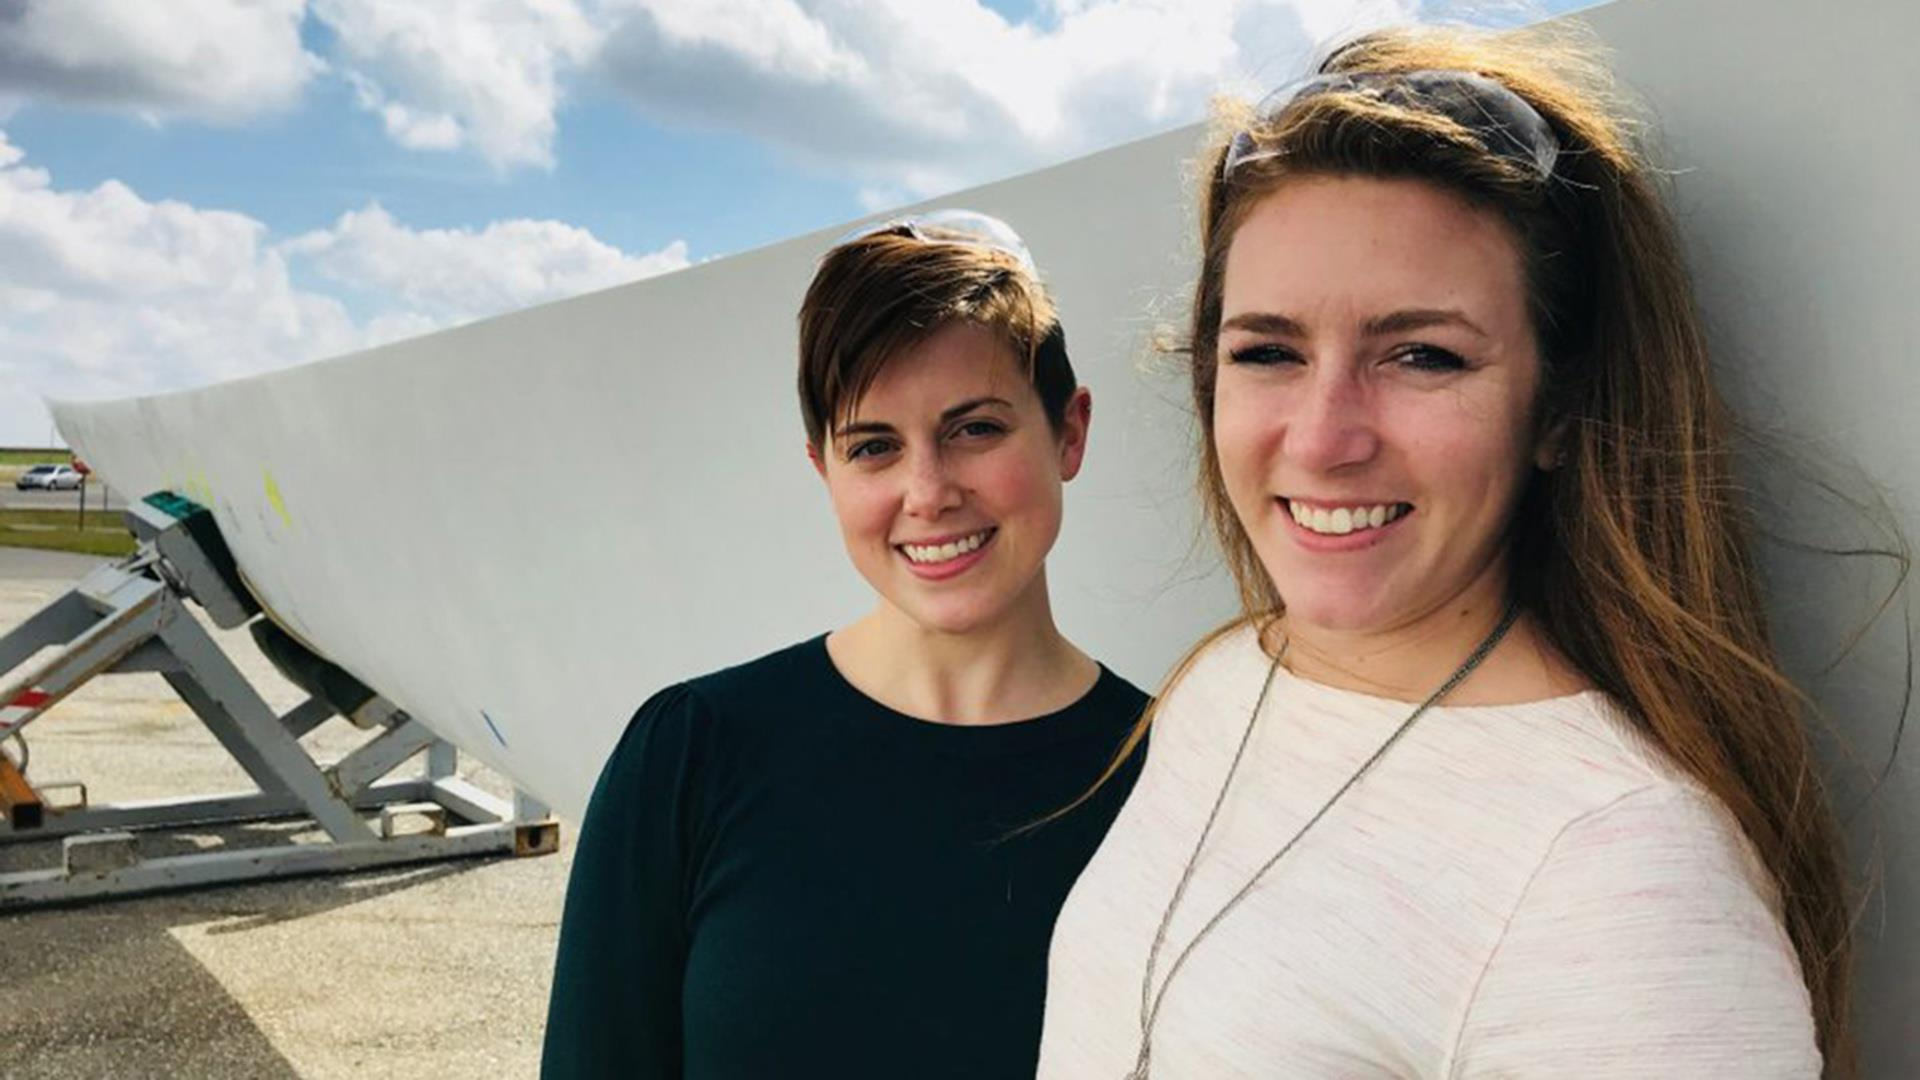 These women are helping build the wind turbine blades of the future.